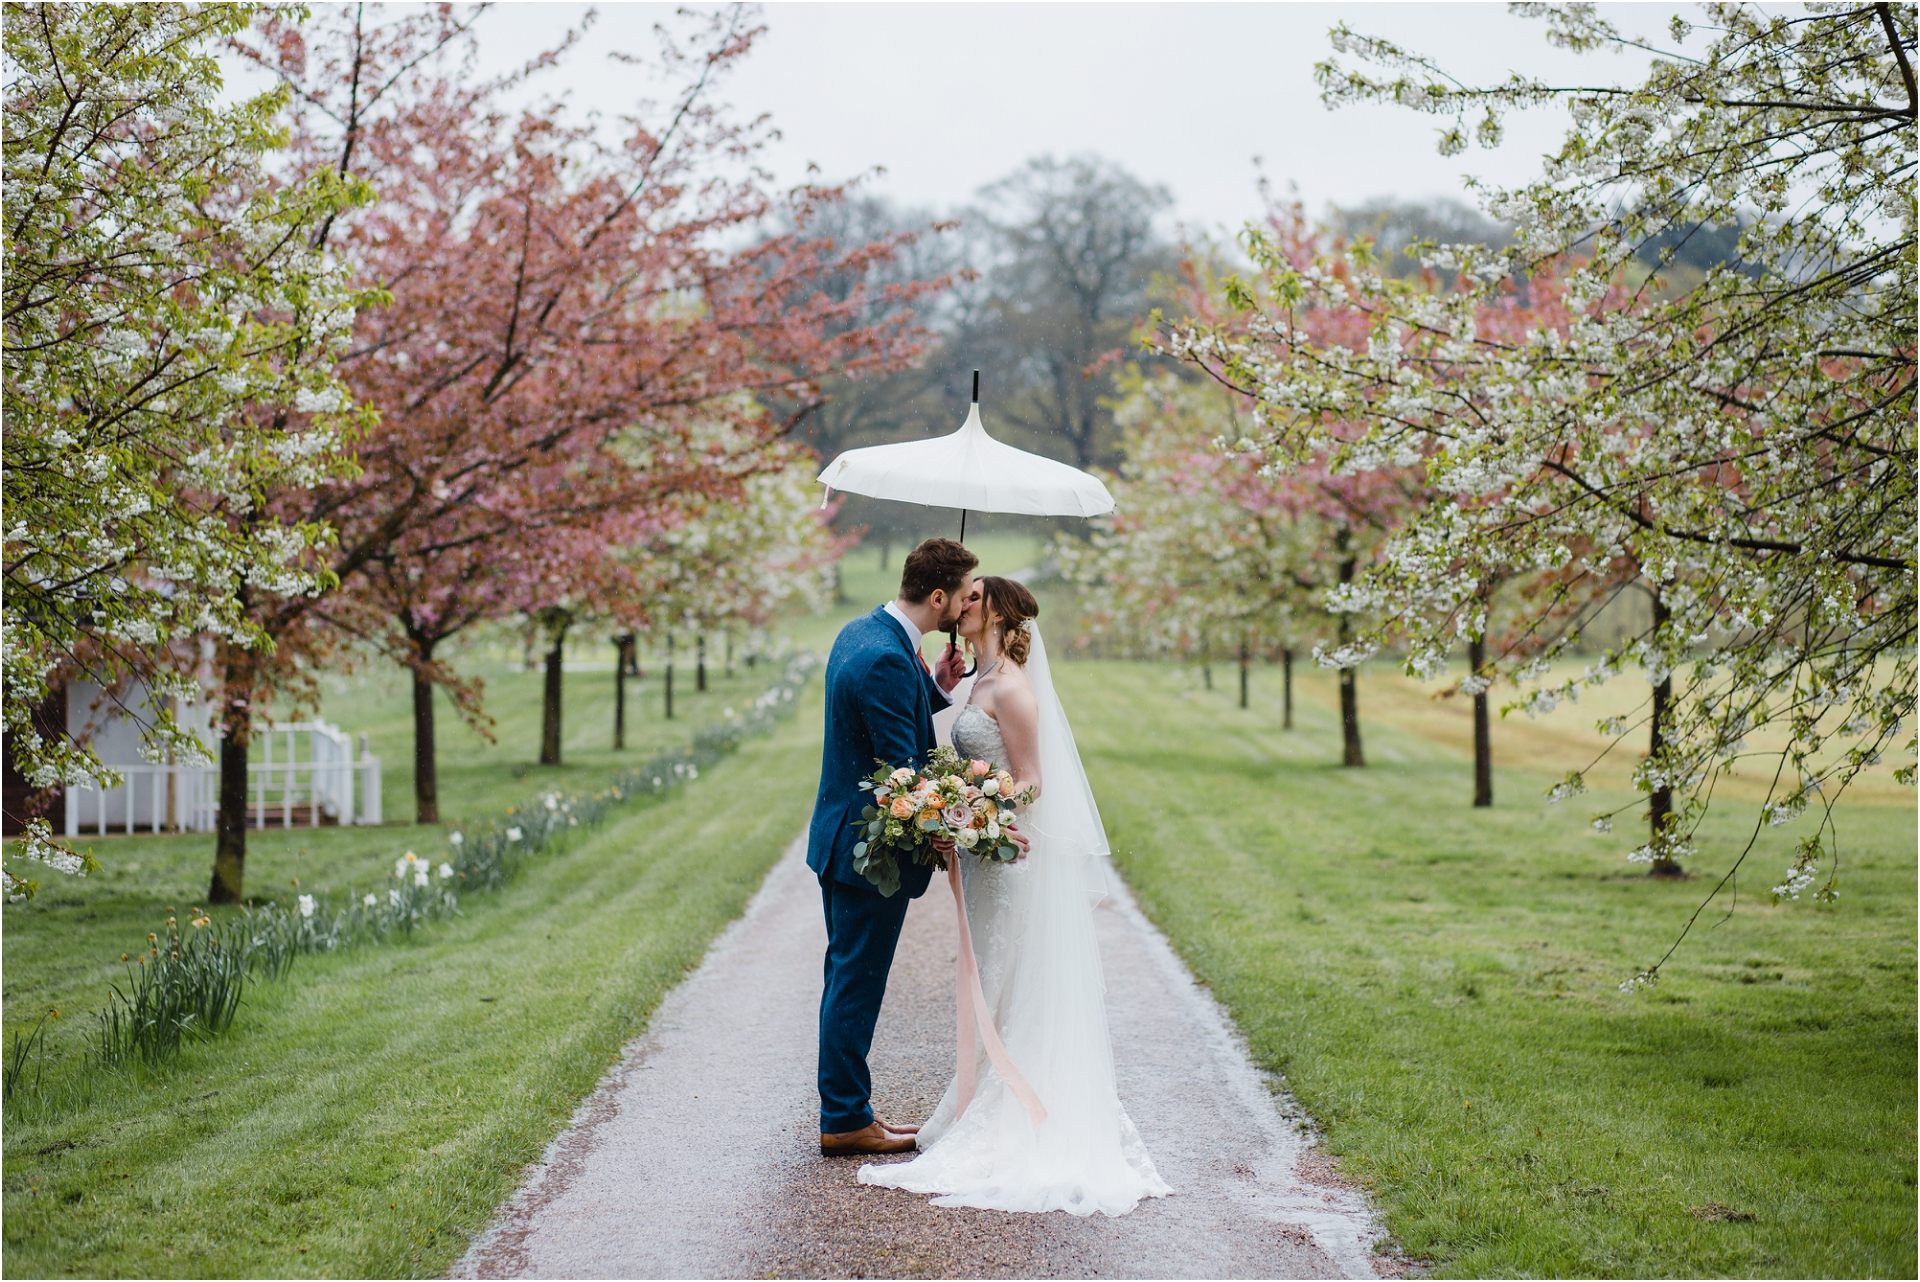 Rainy wedding at Norwood Park